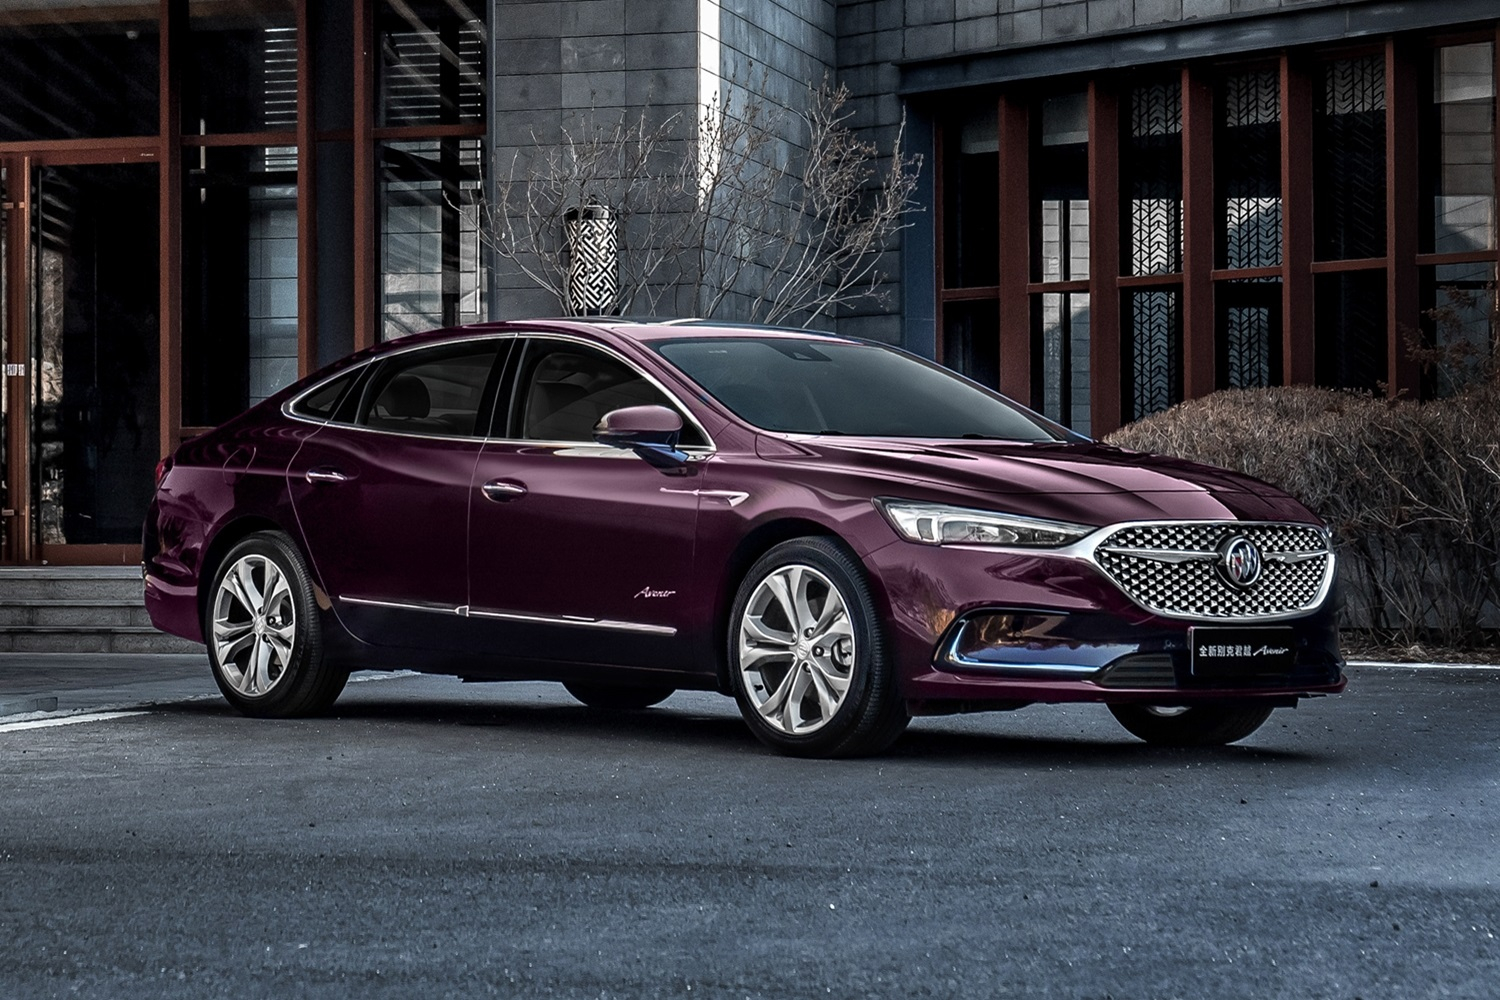 2021 Buick Lacrosse Gets More Refined Than Ever | Gm Authority New 2021 Buick Lucerne Transmission, Parts, Recalls